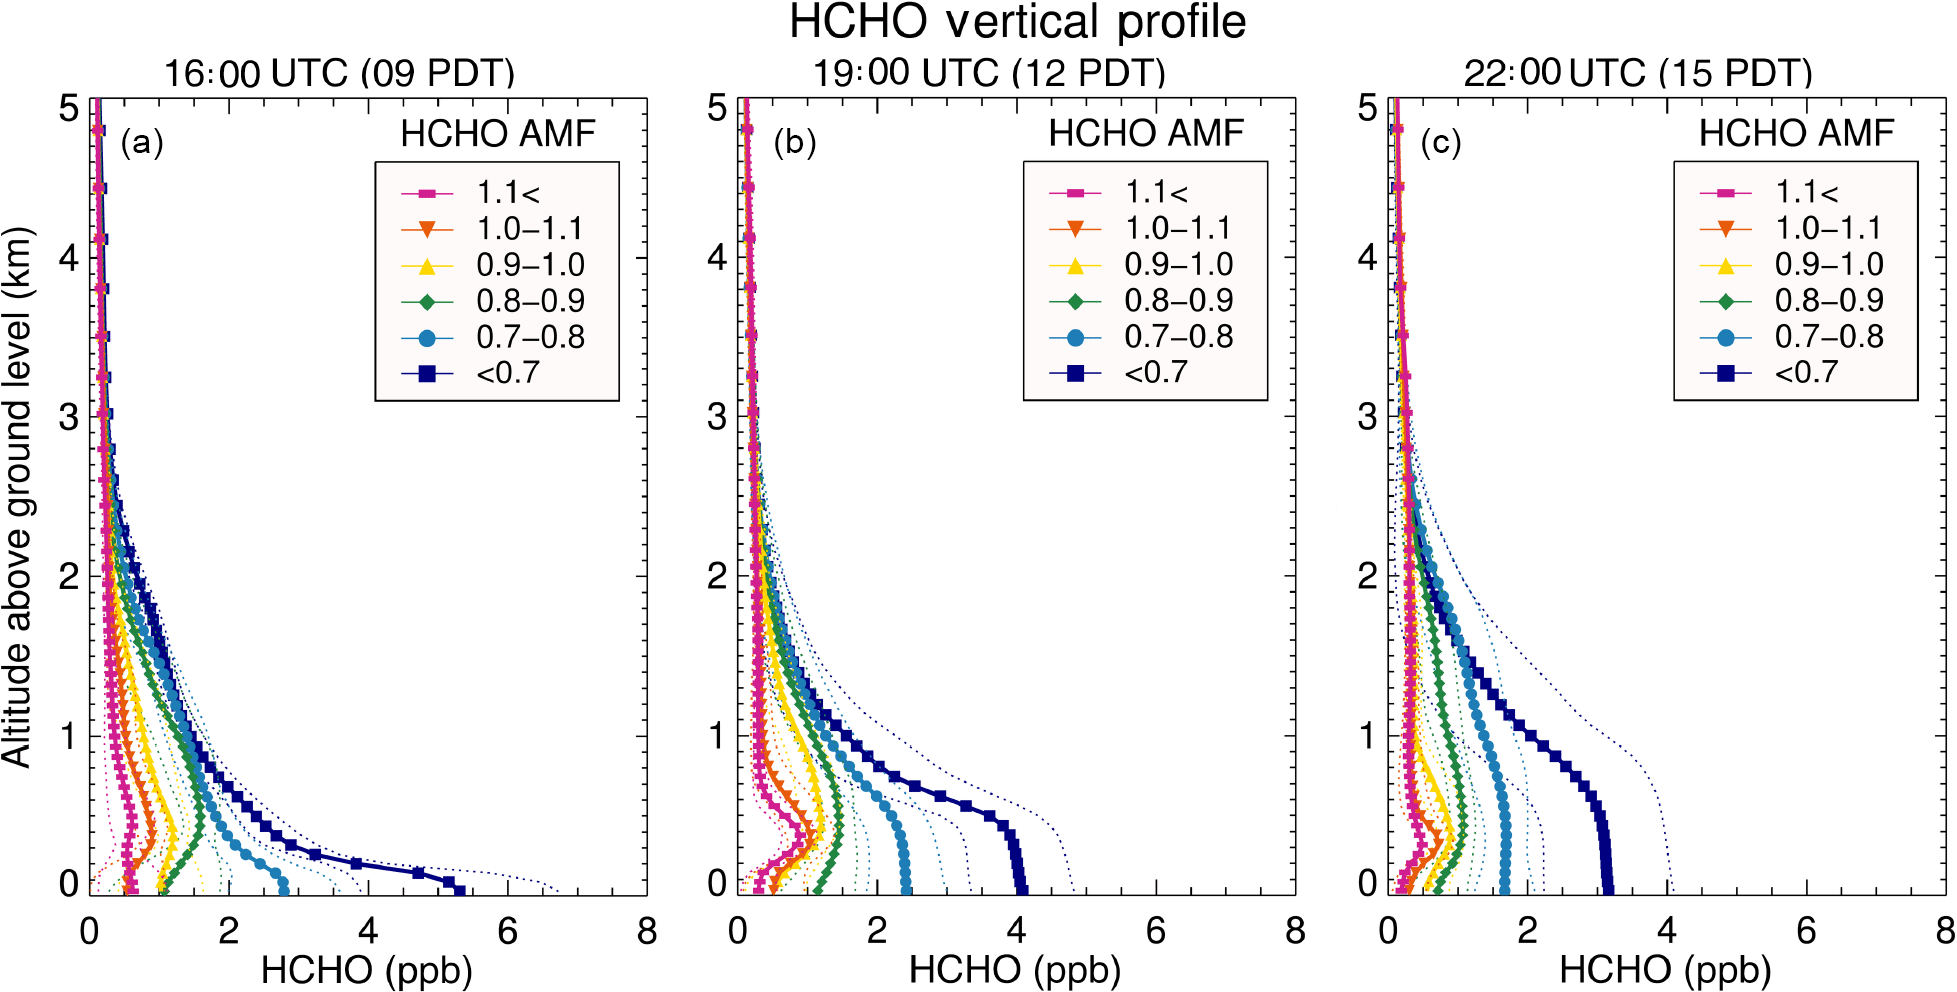 ACP - Impact of high-resolution a priori profiles on satellite-based